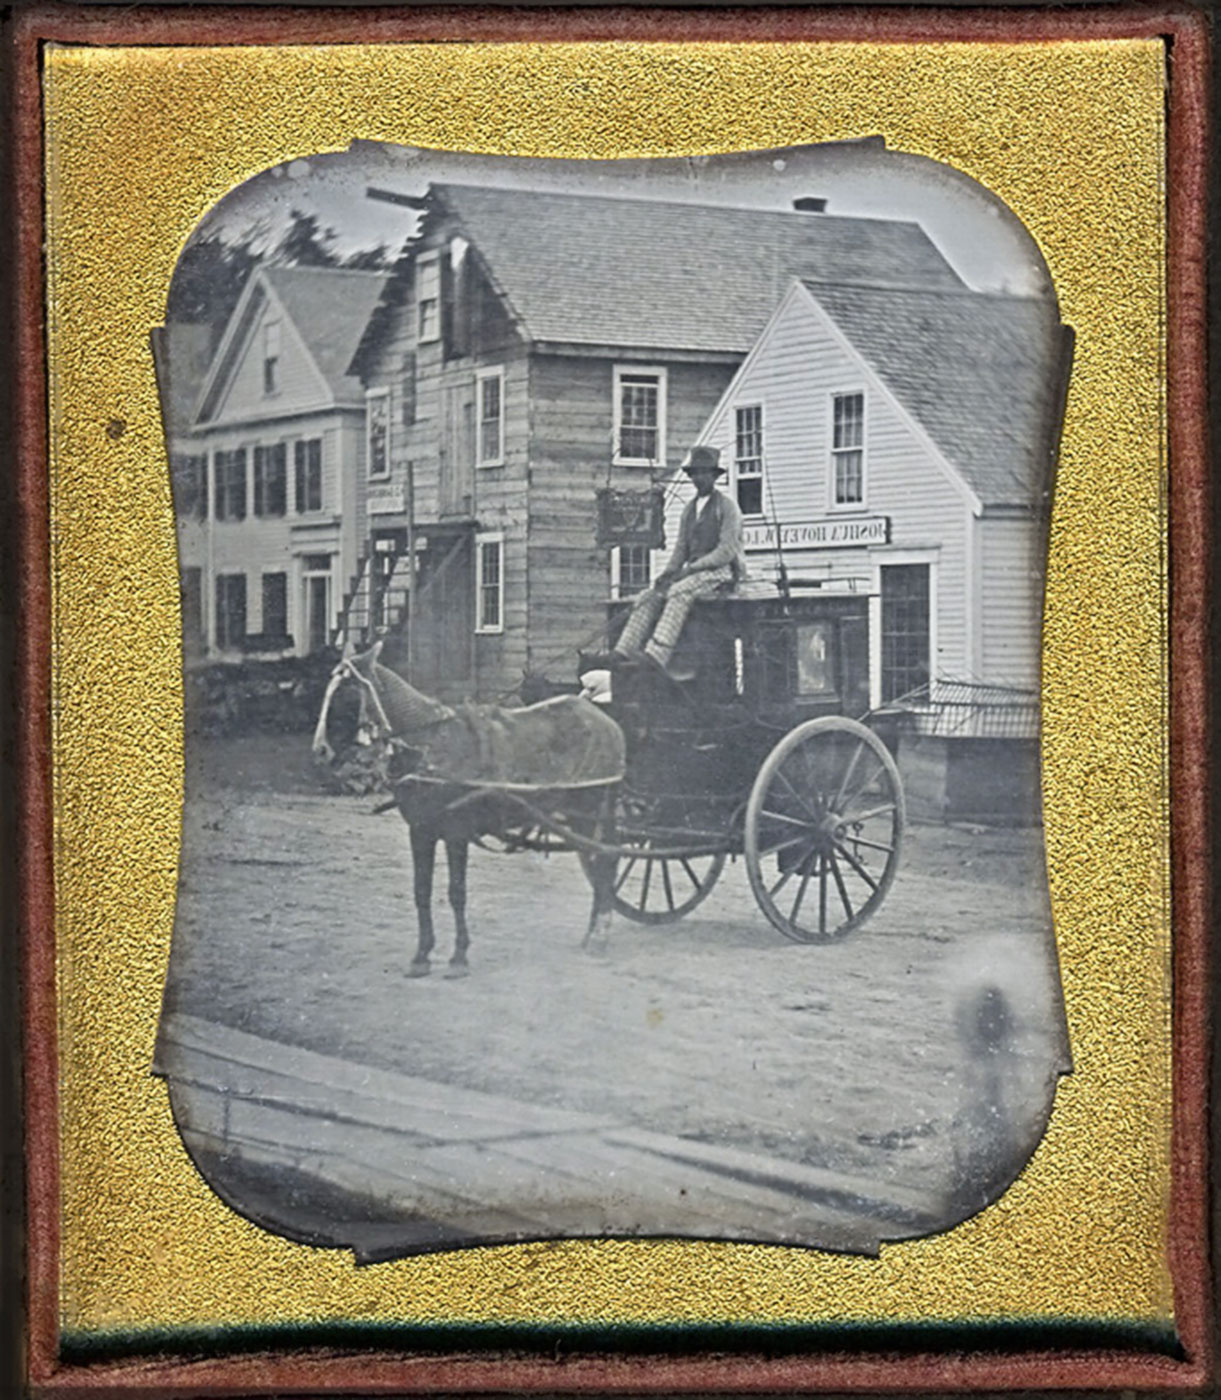 Unidentified photographer, American. Joshua Hovey, shoemaker and grocer of Dracut and Lowell, Massachusetts, ca. 1847